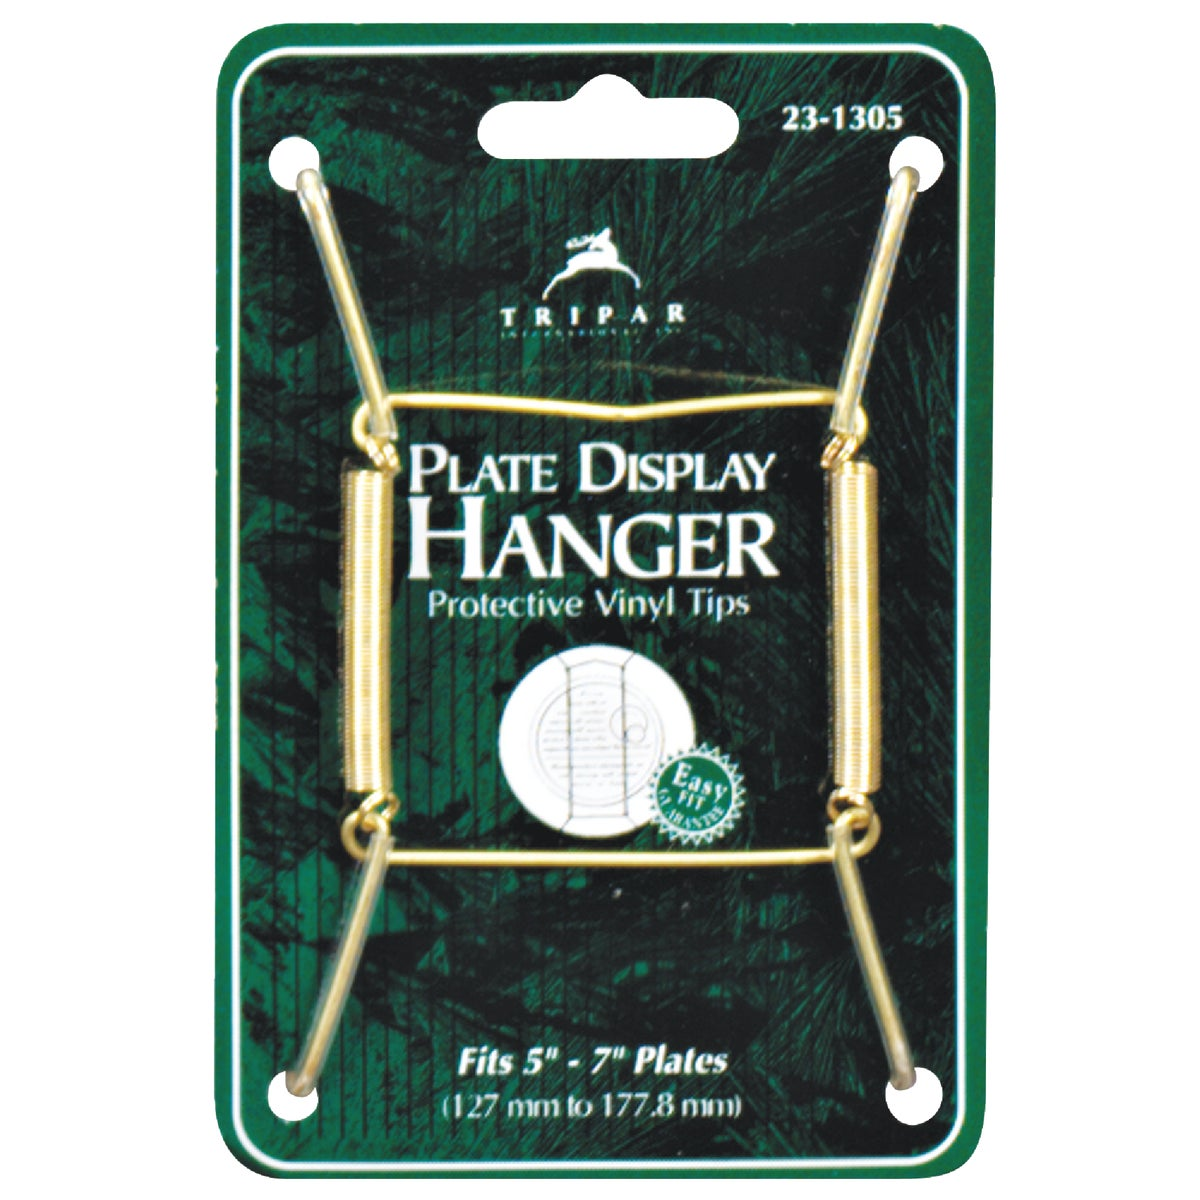 BRASS WIRE PLATE HANGER - 23-1305 by Tripar Intl